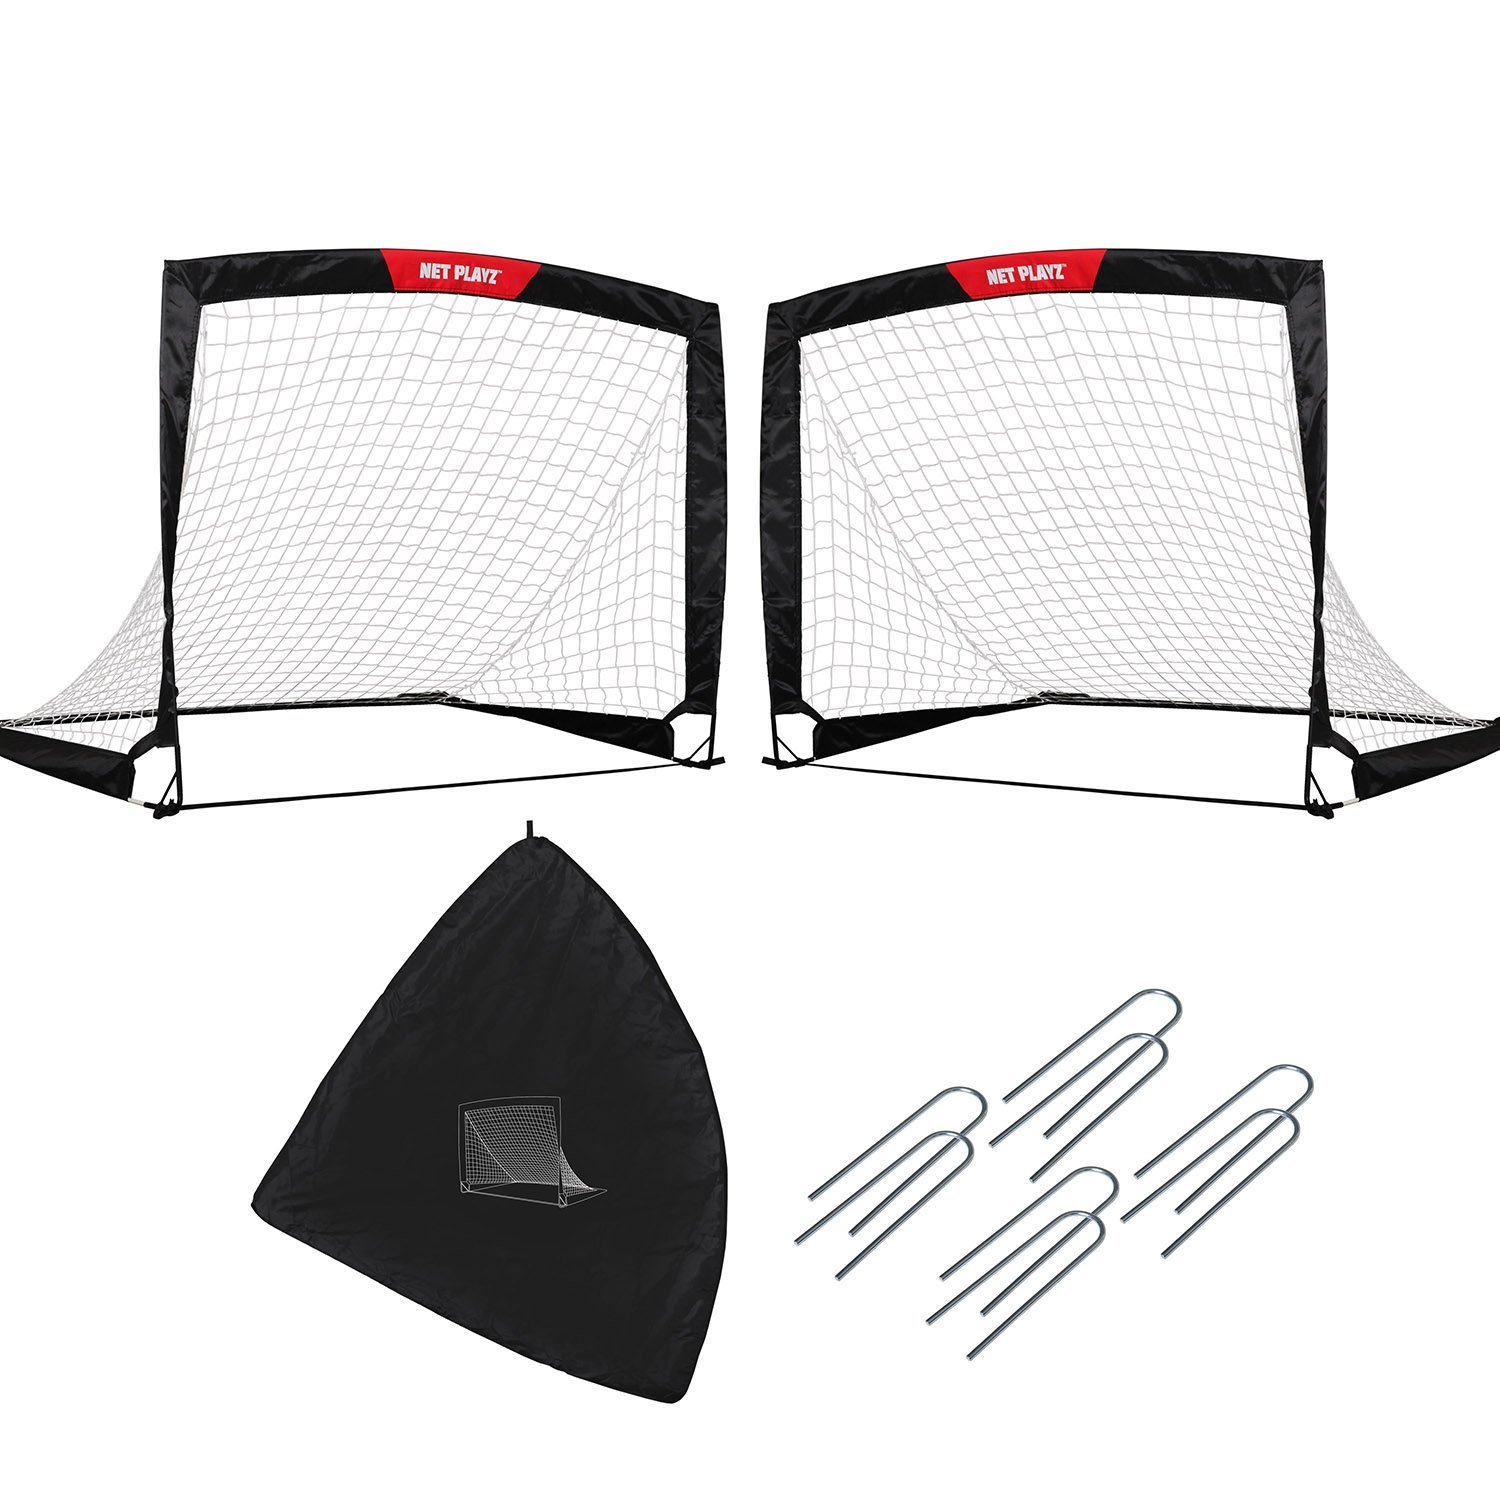 NET PLAYZ Quick Fold-Up Portable Soccer Goal, Set of 2, 4 Ft x 3 Ft